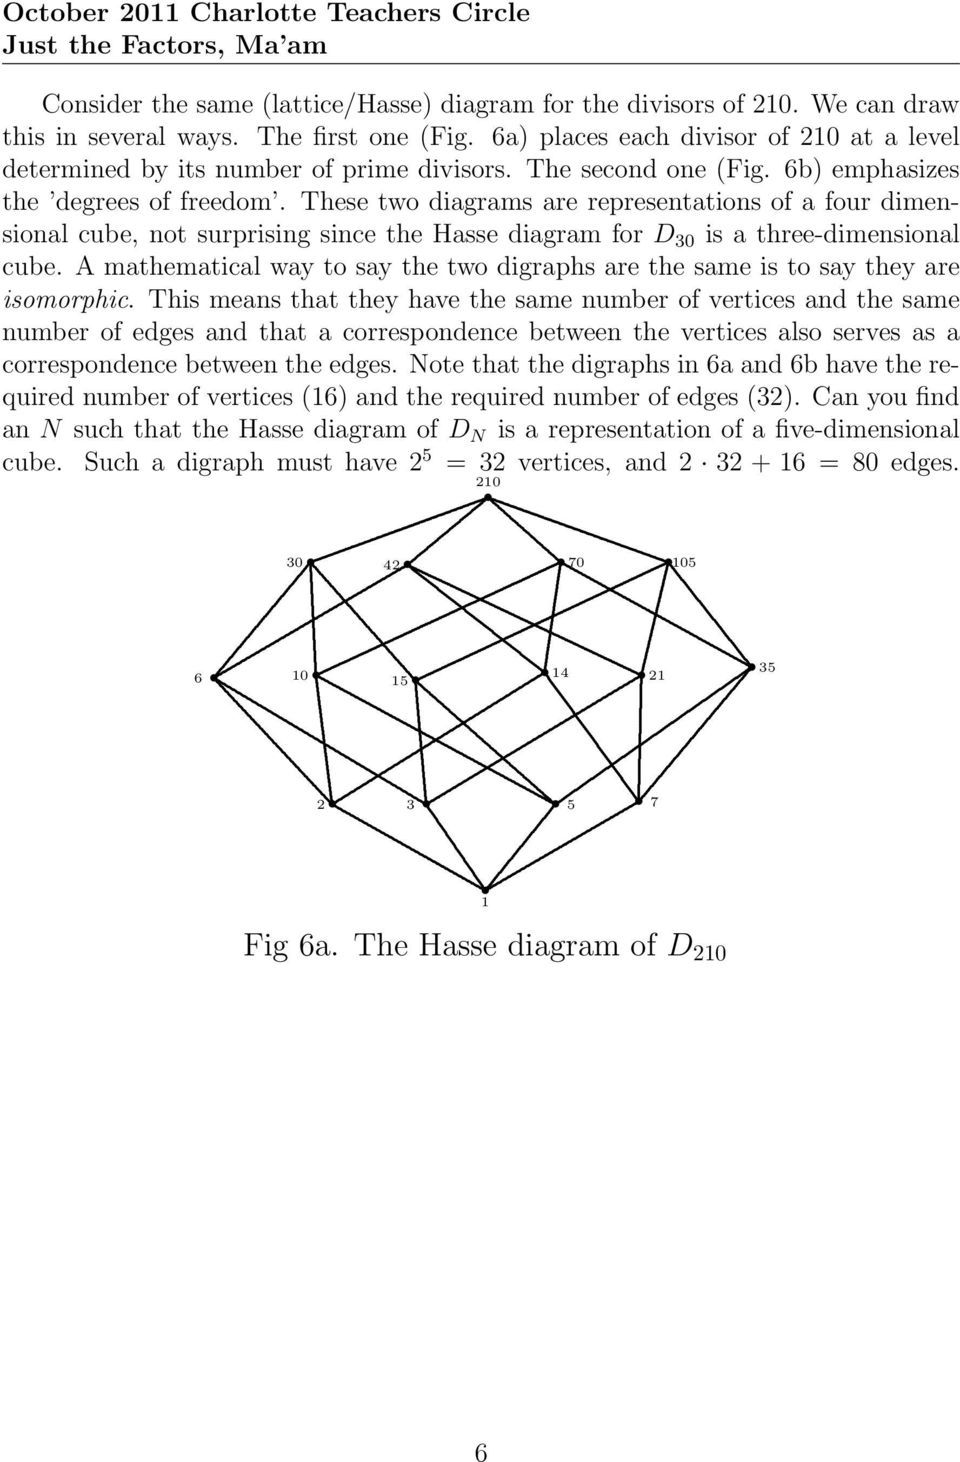 three-dimensional cube A mathematical way to say the two digraphs are the same is to say they are isomorphic This means that they have the same number of vertices and the same number of edges and